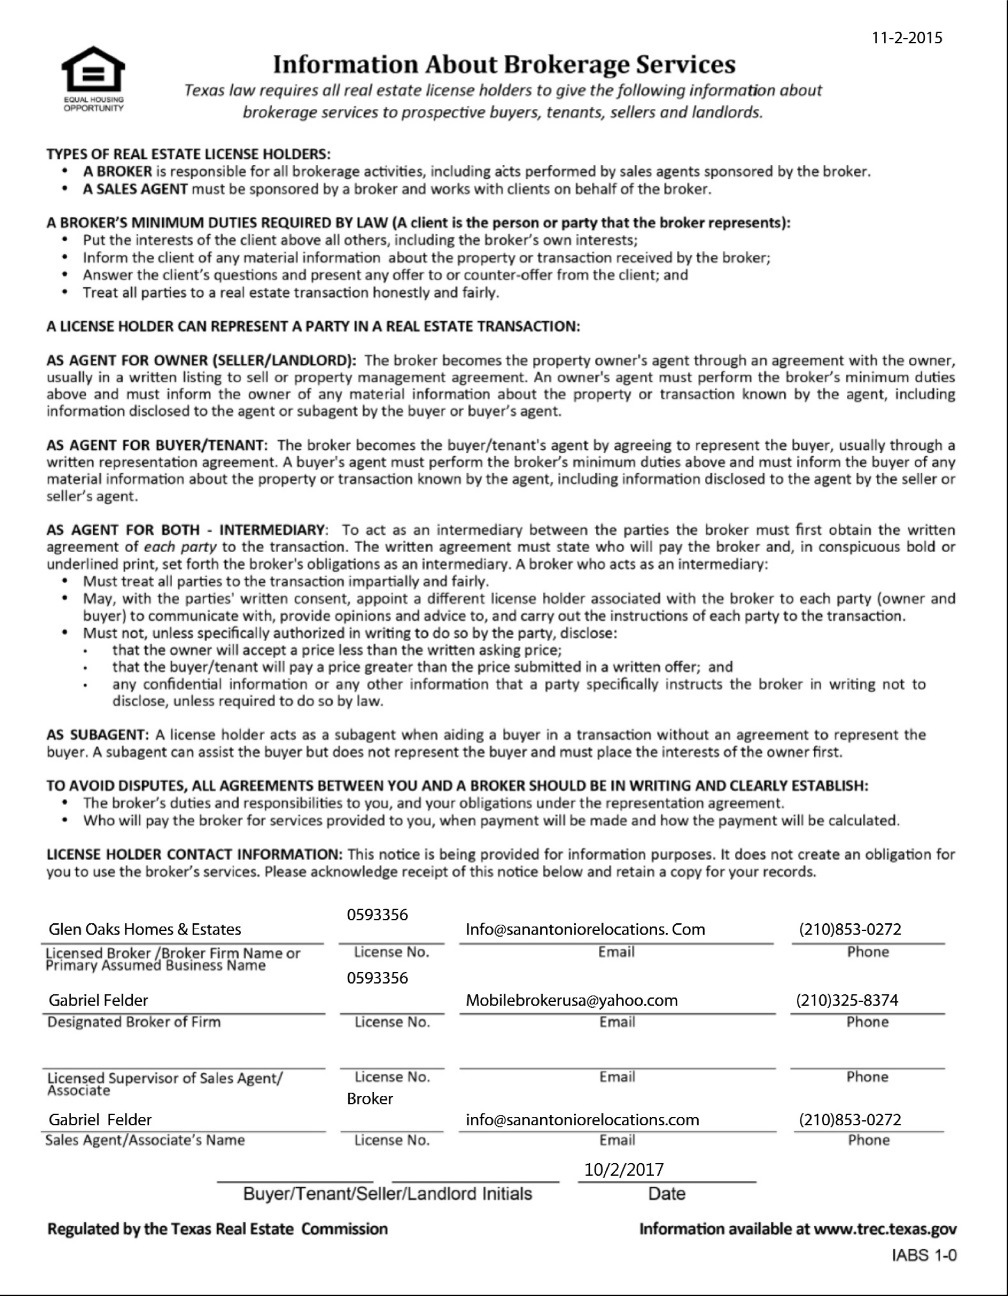 Texas Real Estate Commission (TREC) Information About Brokerage Services Form-3